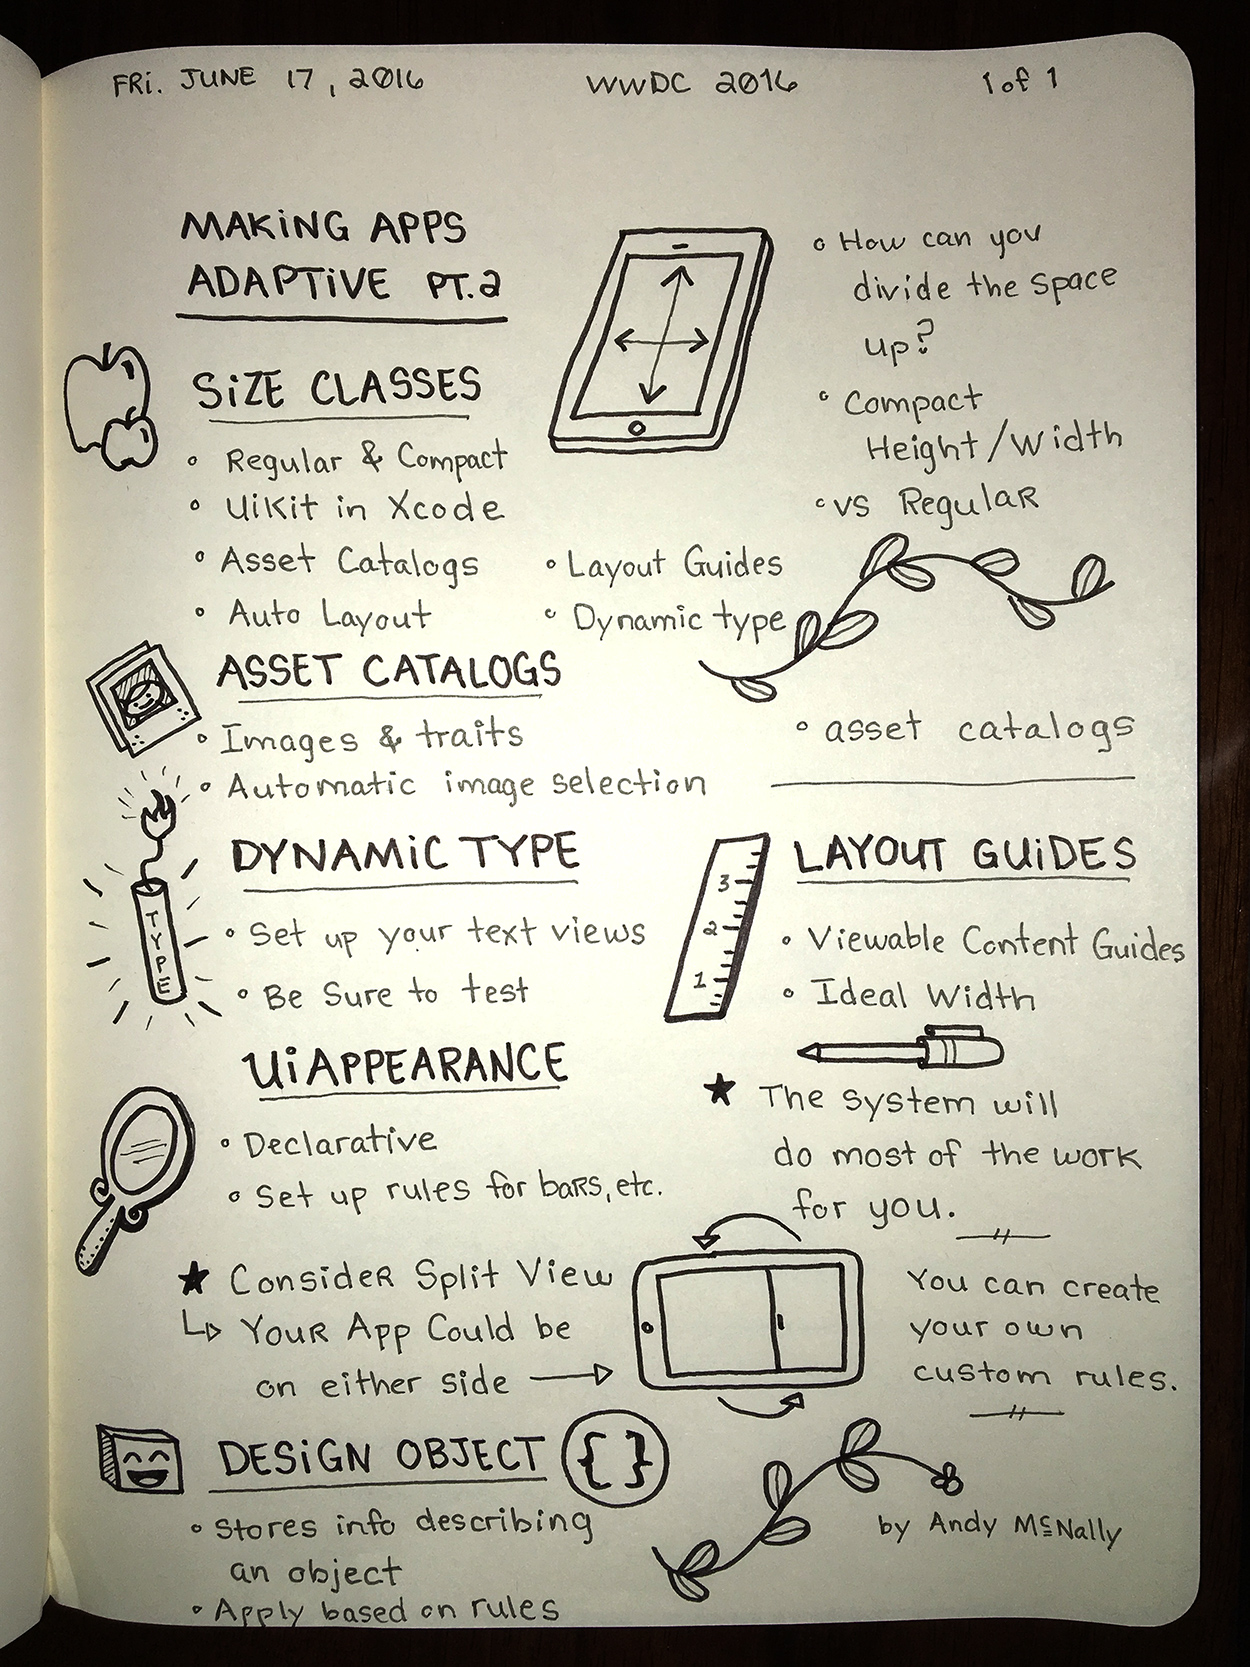 WWDC sketchnotes - Mak\ing Apps Adaptive Pt.2